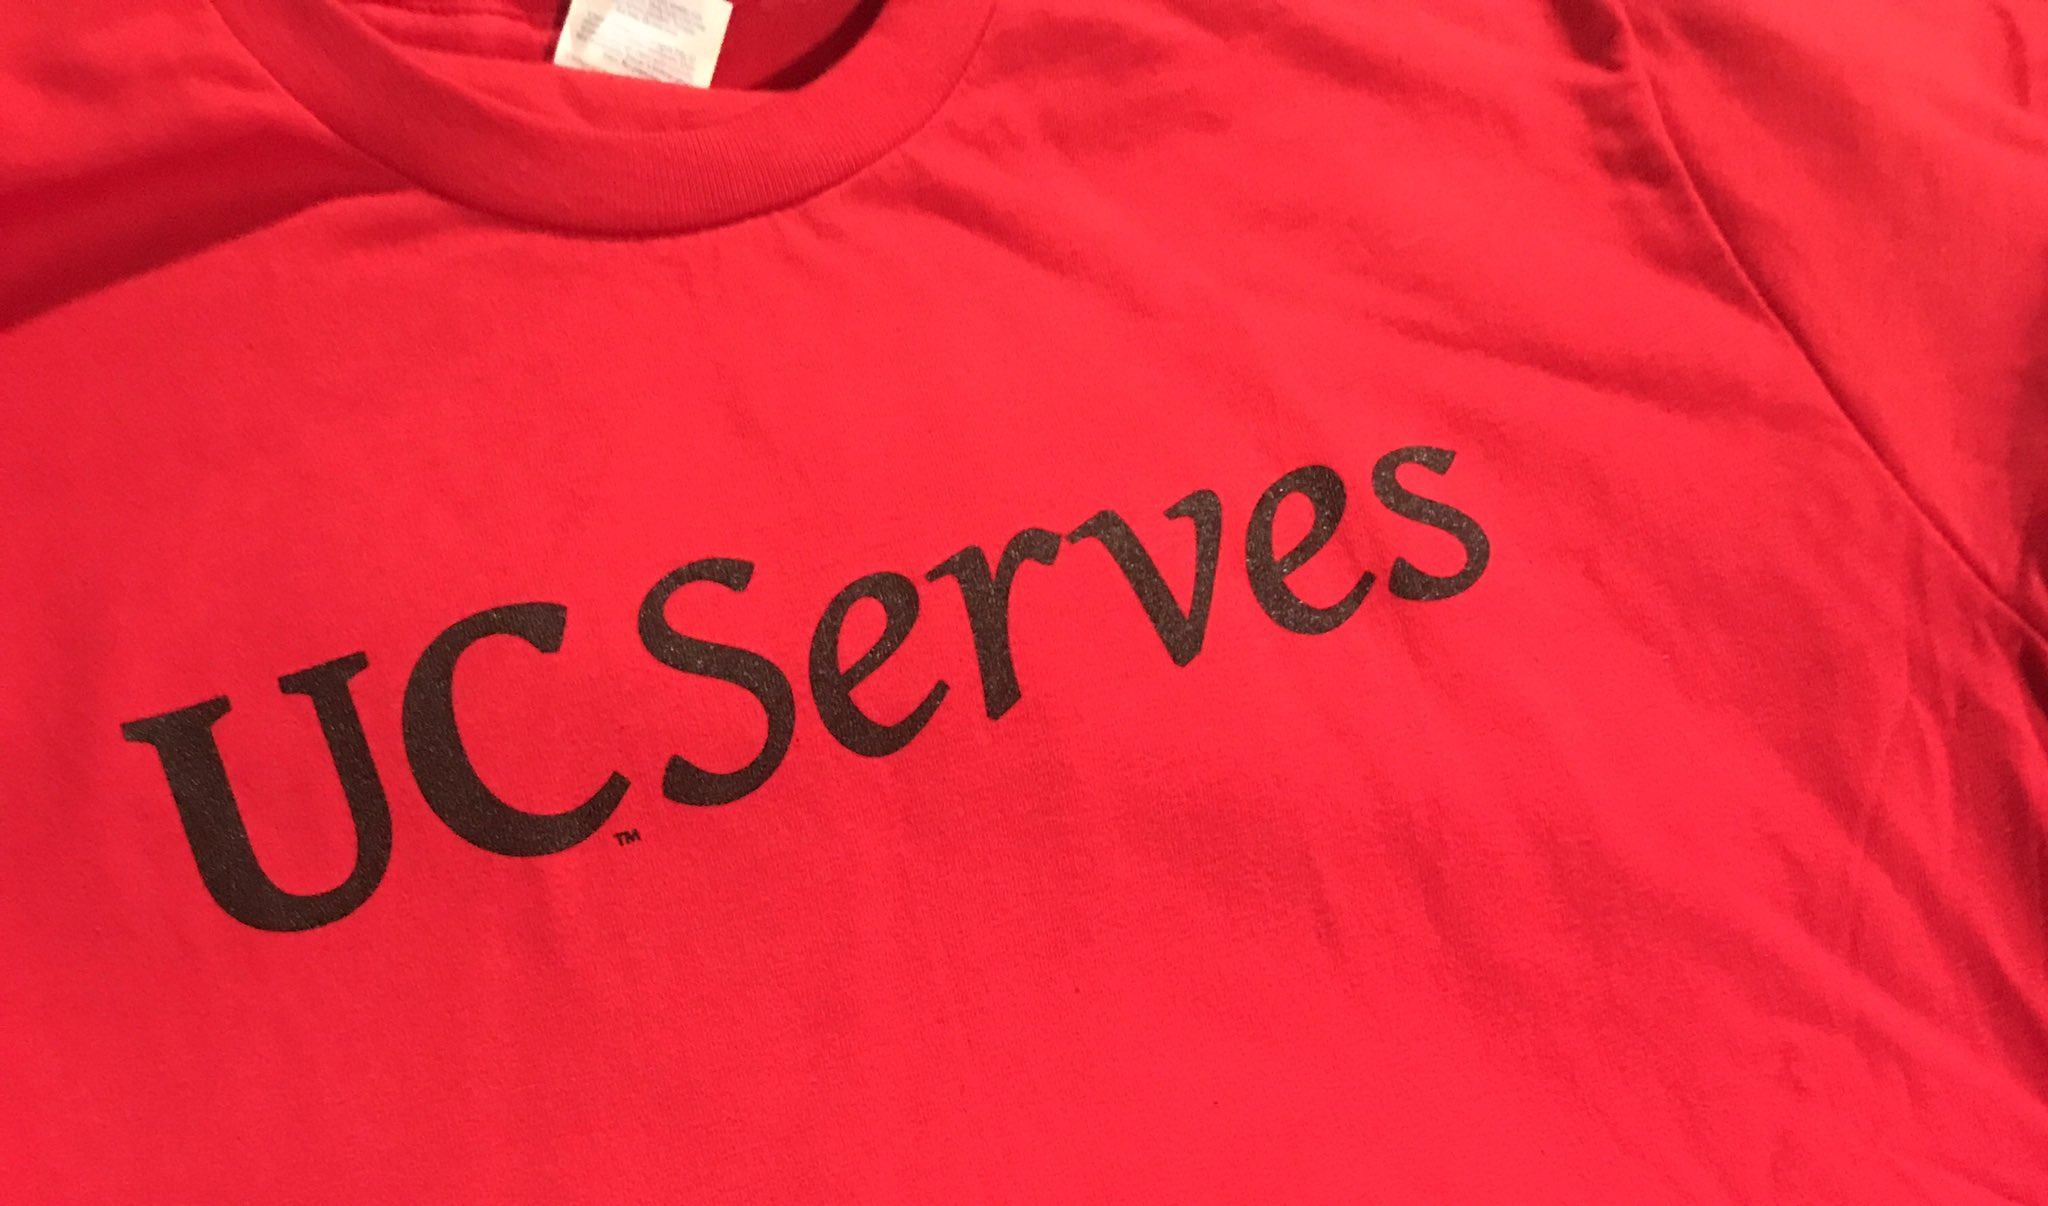 Today is the day! #UCServes 2017 is here! Over 400 @uofcincy faculty/staff will be at 40+ sites in greater Cincinnati for day of service! https://t.co/se9uBvAQ2v